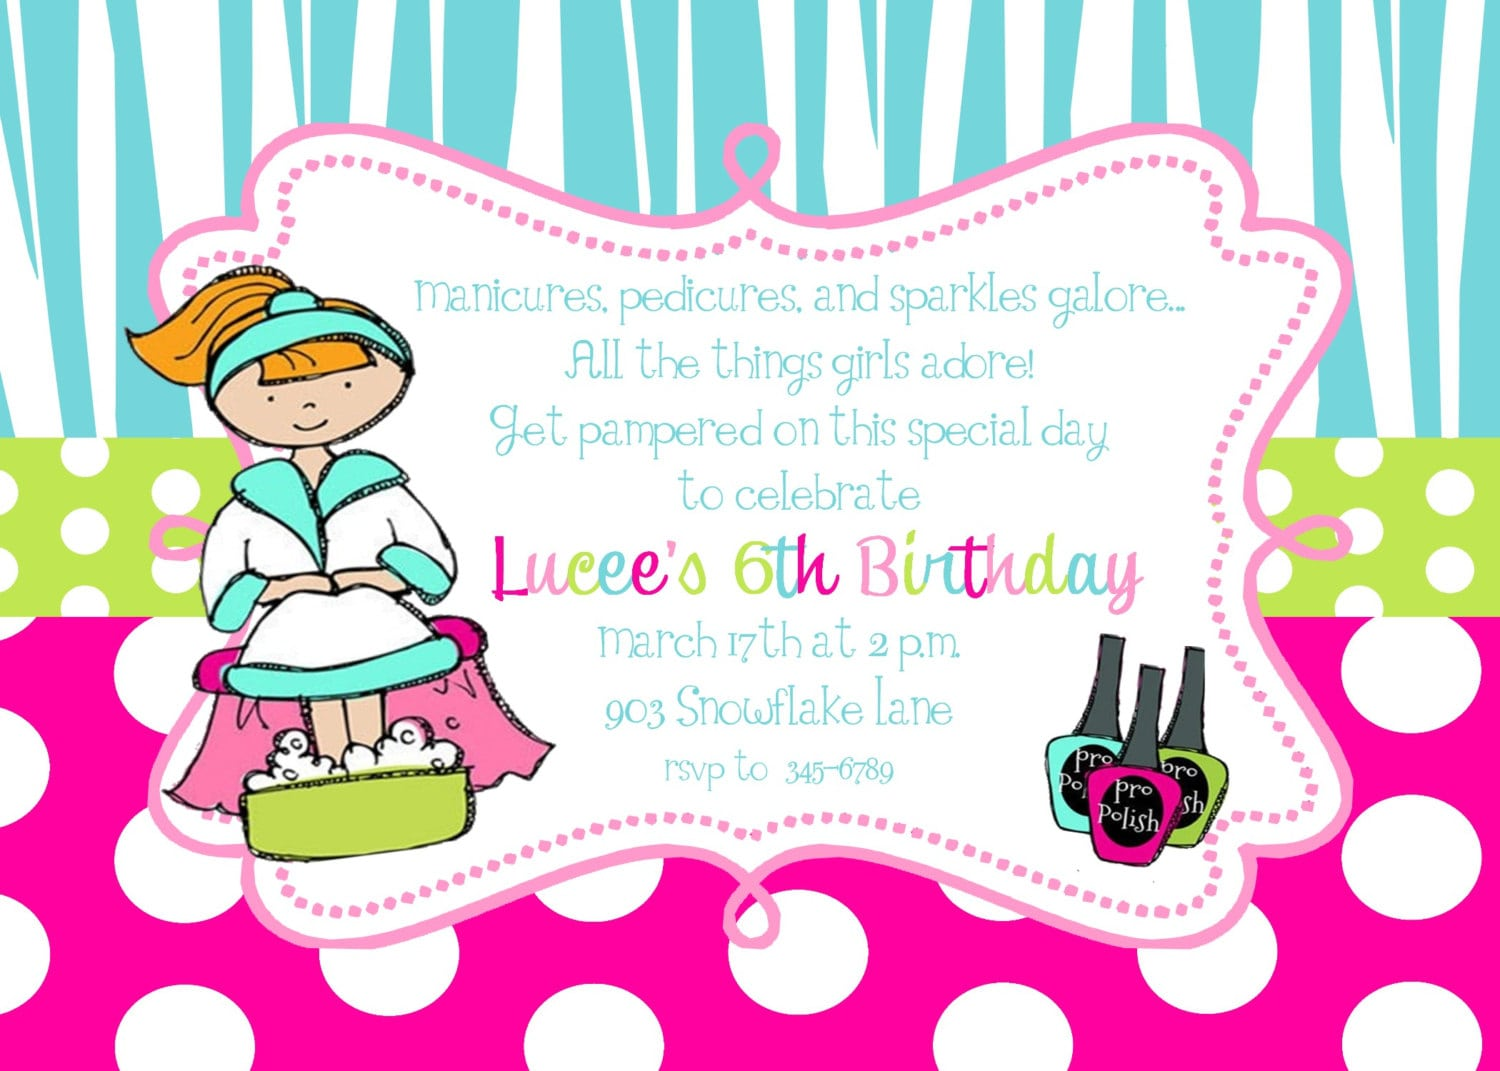 Pamper Party Invites with beautiful invitation ideas